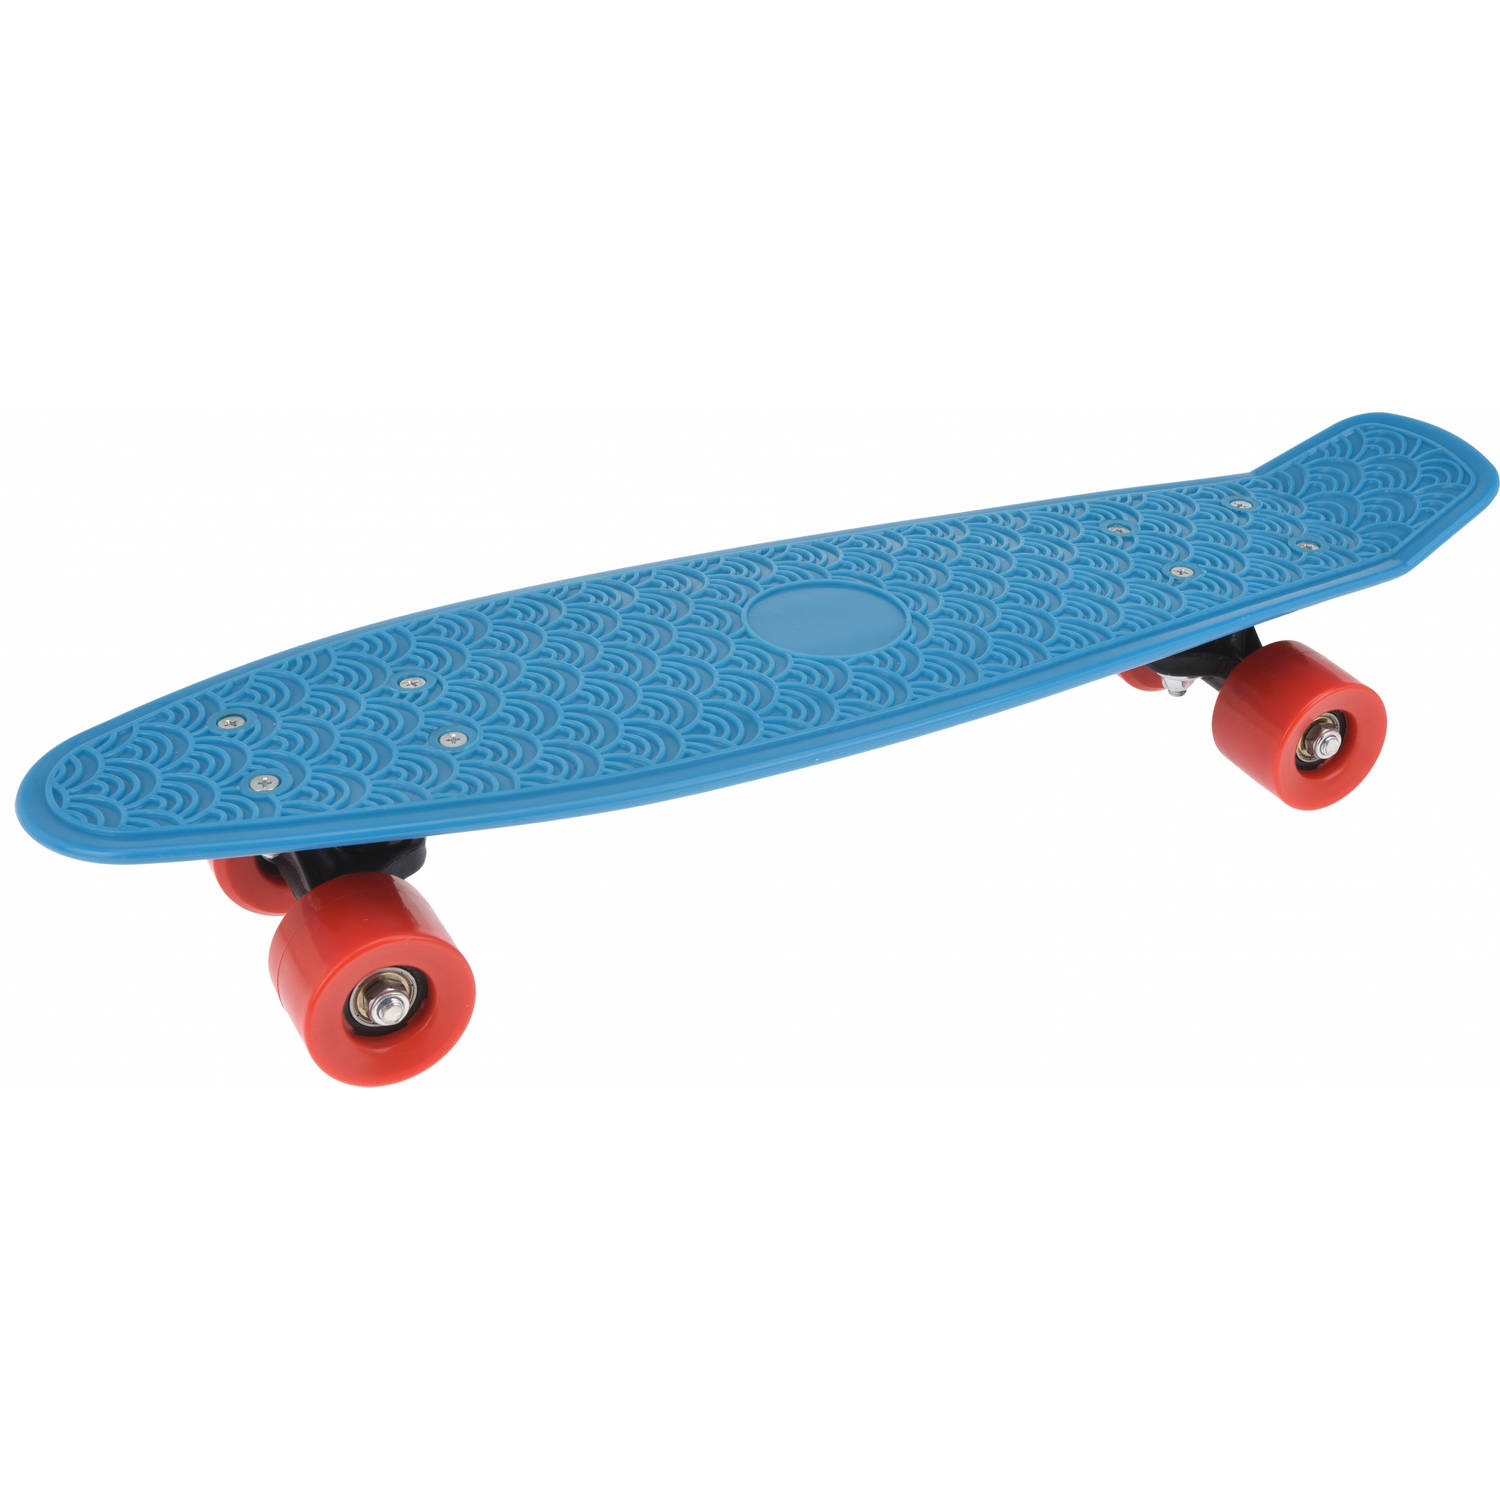 Free and Easy skateboard retro 59 cm blauw/rood